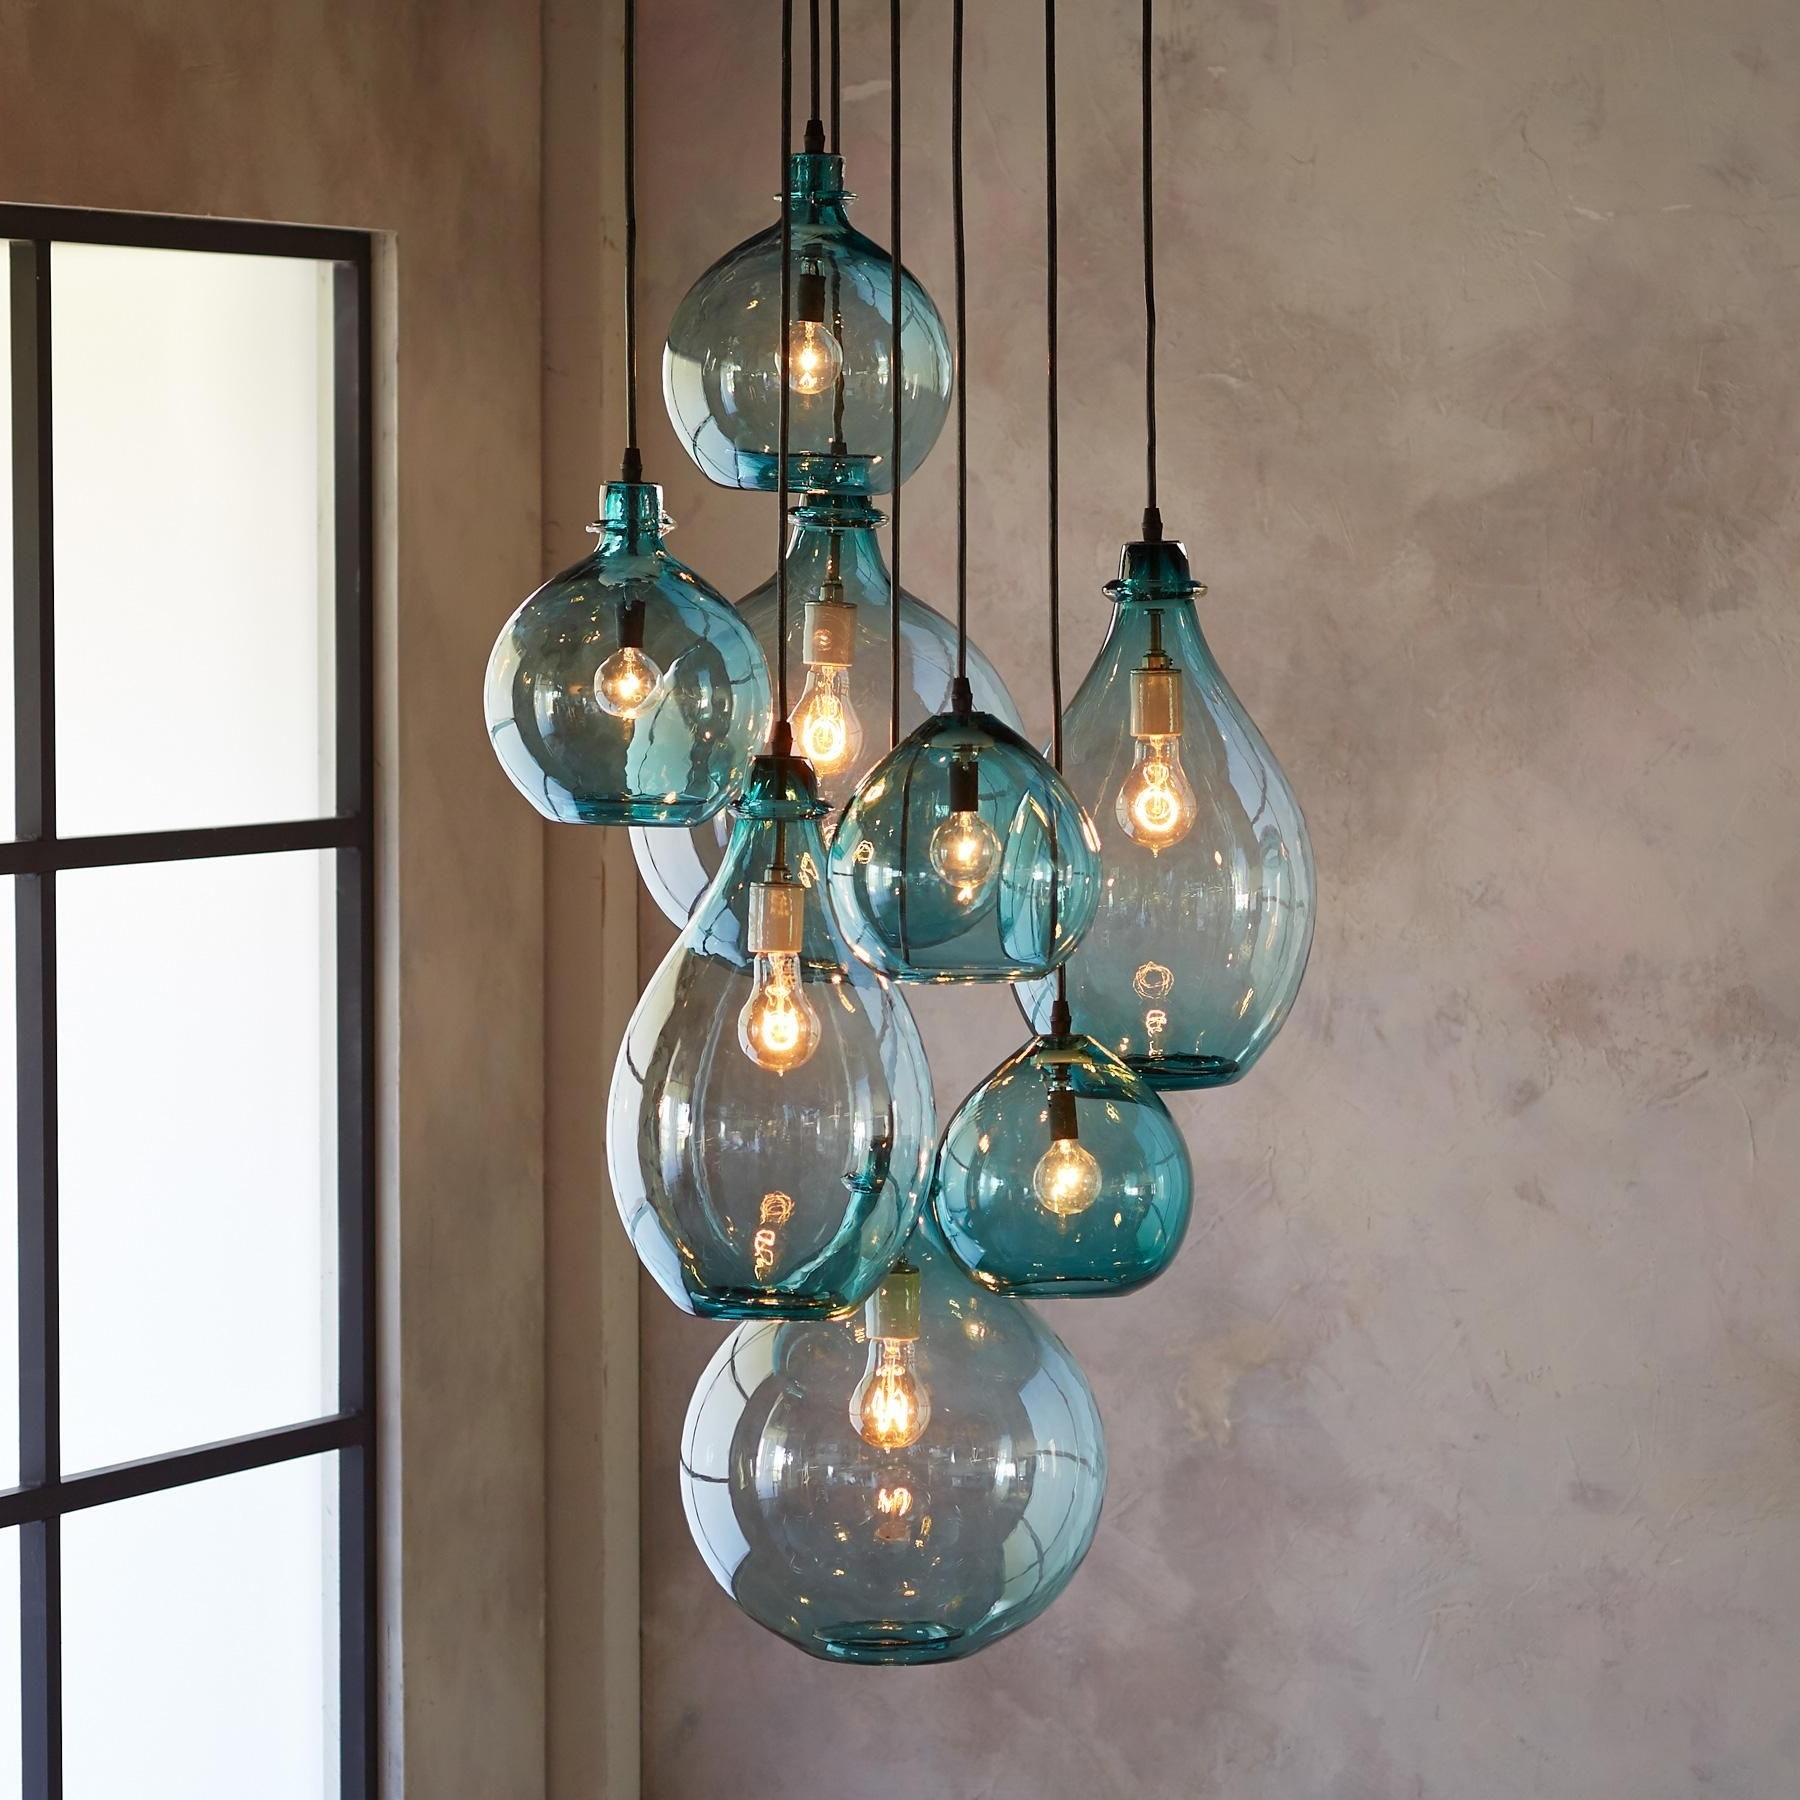 Salon Glass Pendant Canopy — Limpid Turquoise Drops Of Hand Blown Pertaining To 2018 Turquoise Color Chandeliers (View 19 of 20)